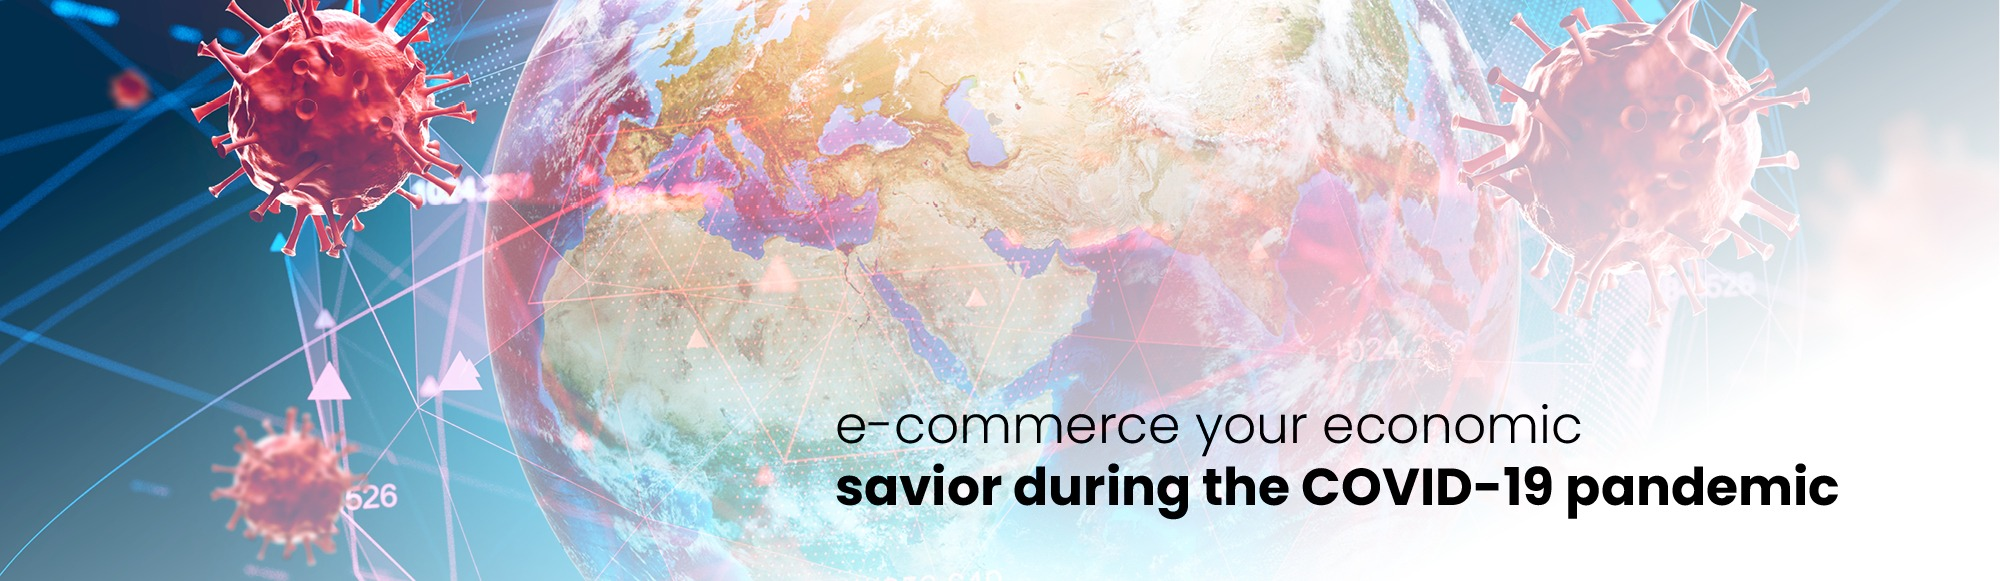 E-commerce: Your Economic Savior During The COVID-19 Pandemic